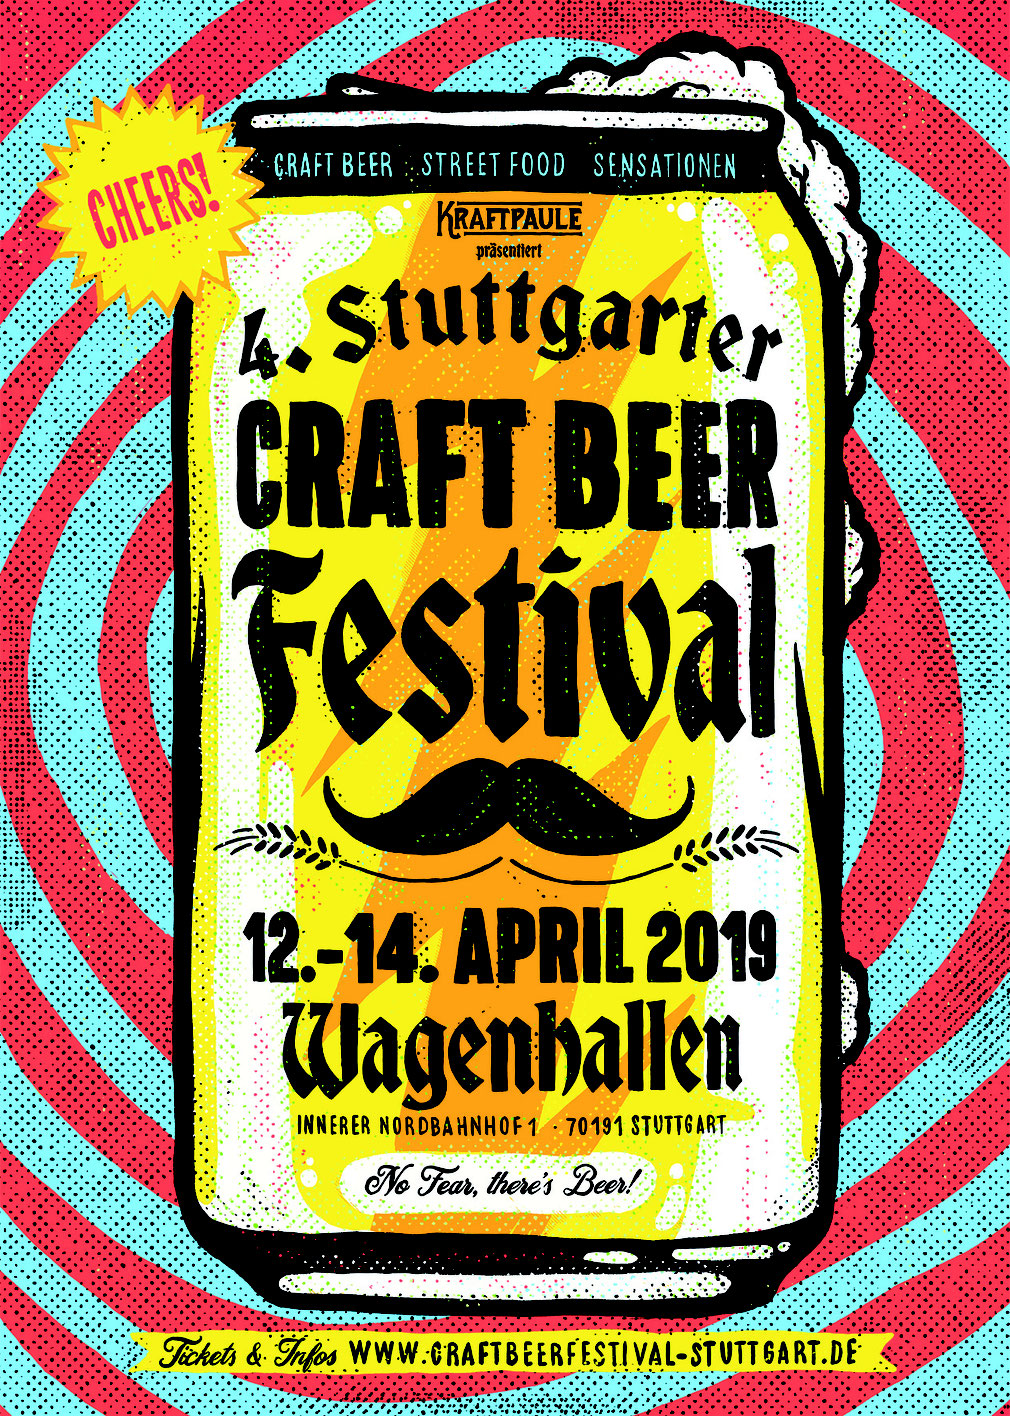 Craft Beer Festival Stuttgart April 2019